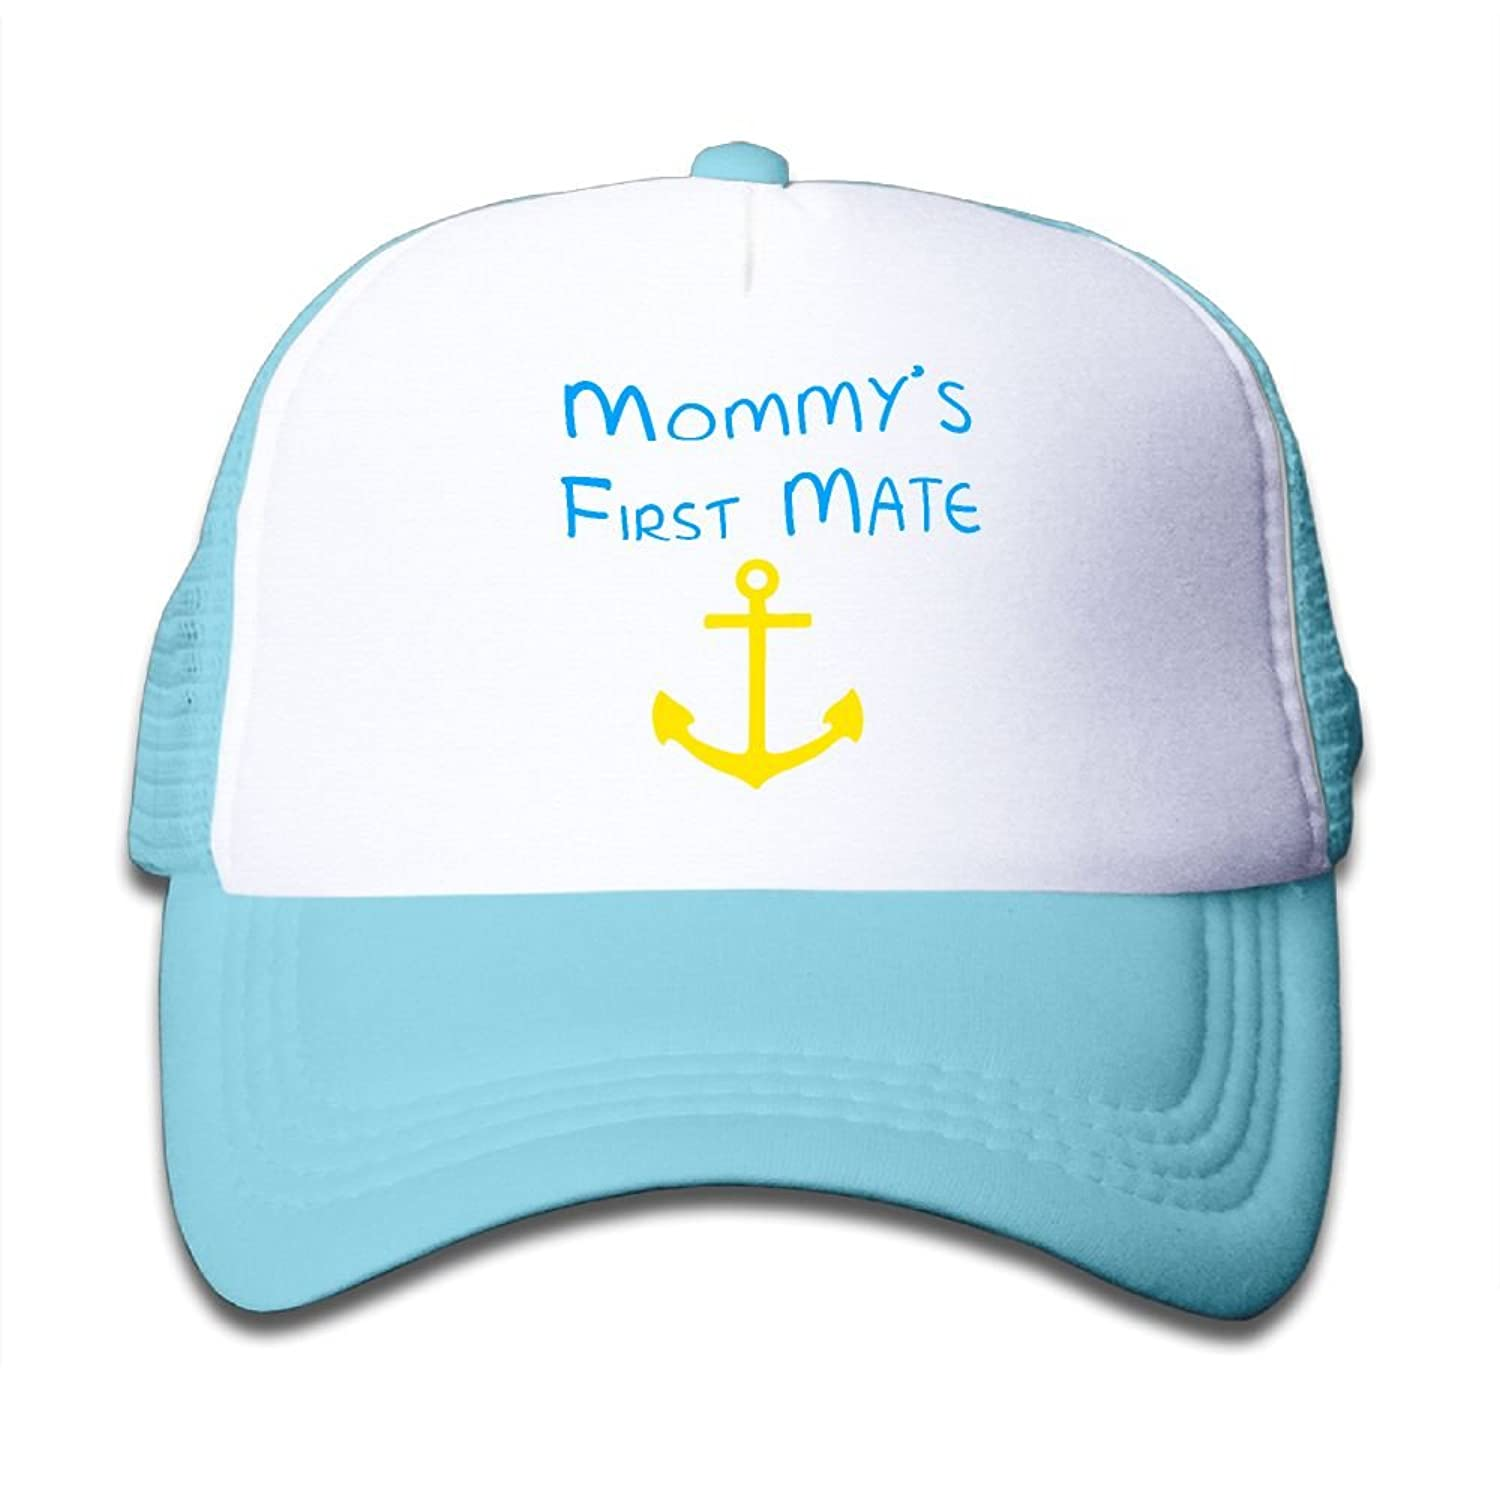 Gdgd1 Caps Mommy's First Mate Baby-Girl Fashion Flat Hat Adjustable Baseball Caps big discount